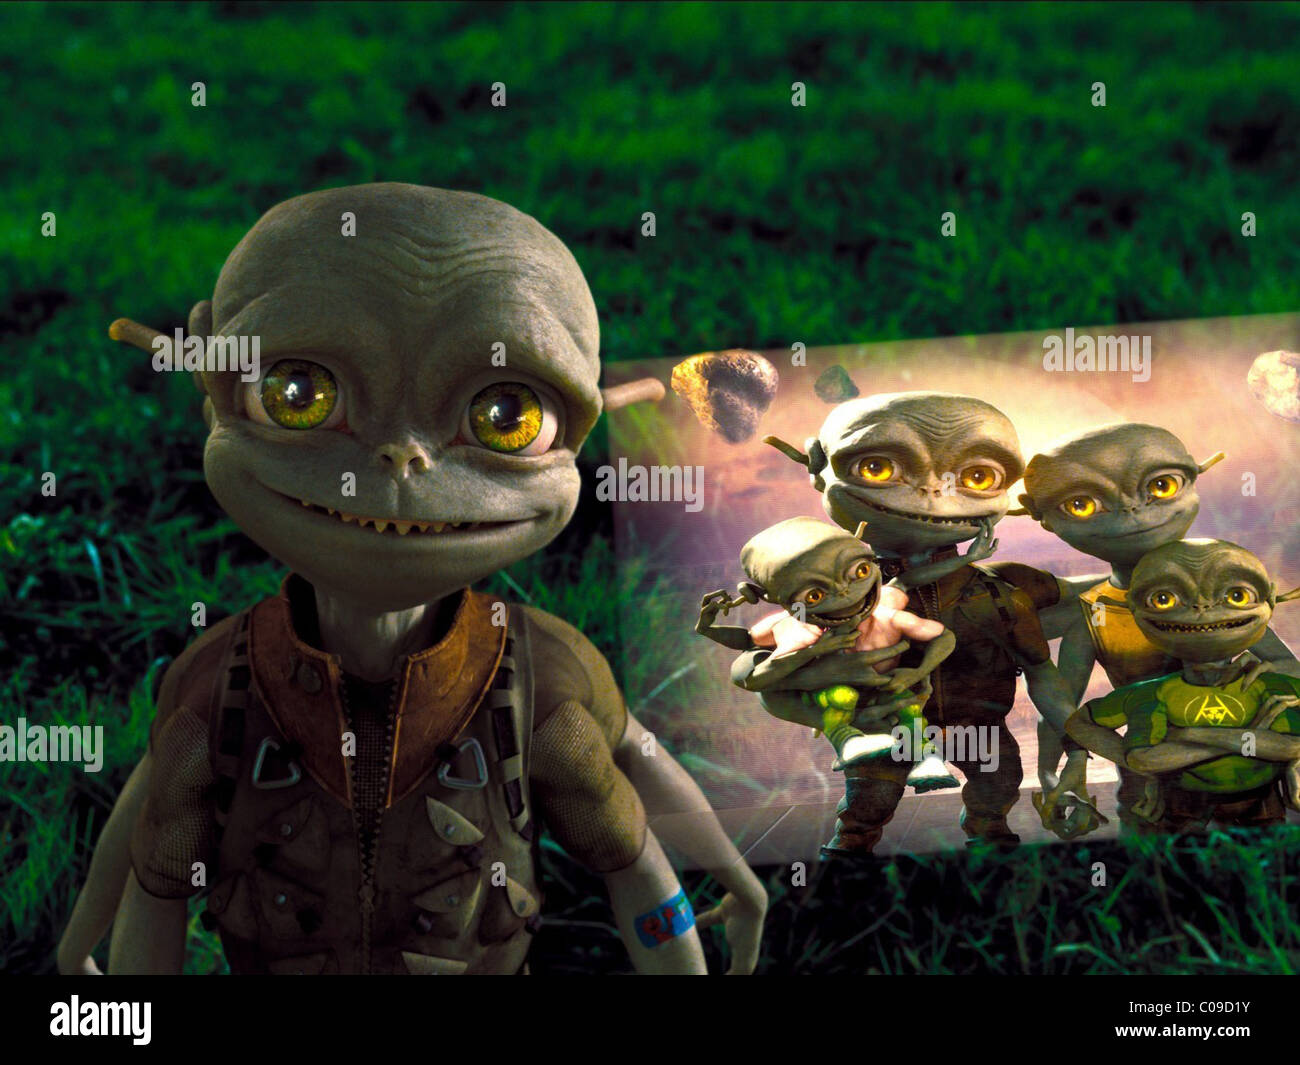 ALIEN ALIENS IN THE ATTIC (2009) - Stock Image